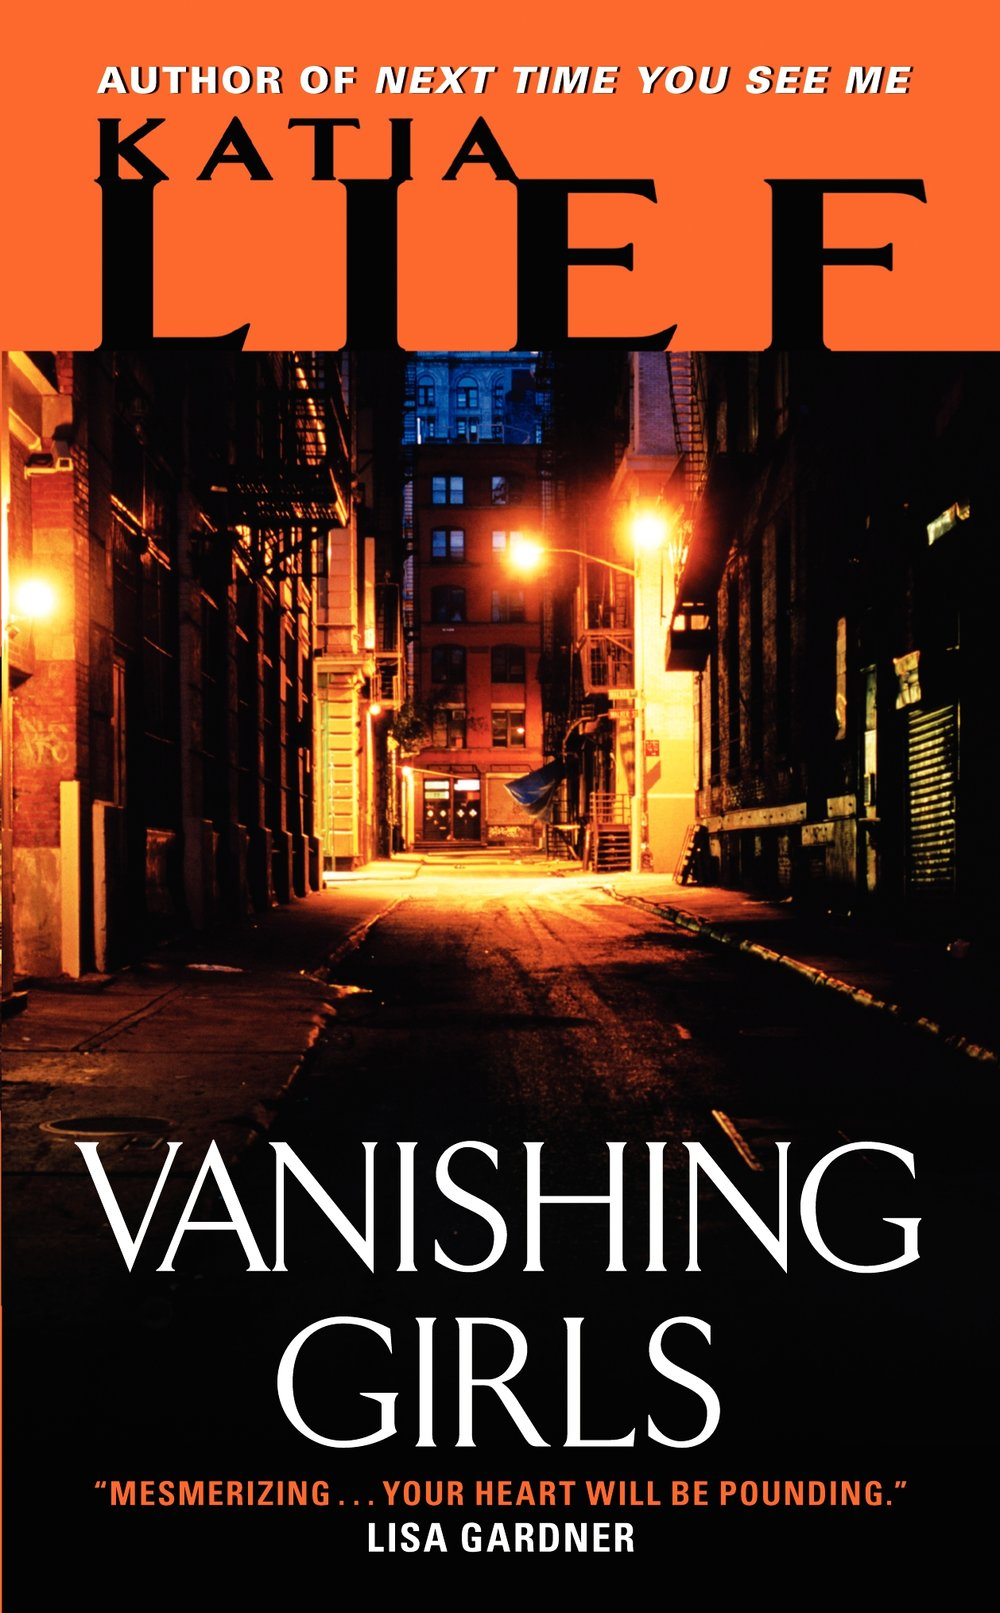 Book 3 - Girls are vanishing off the streets of New York City, and young women are being murdered. When the violence descends on Karin Schaeffer and Mac MacLeary's comfortable Brooklyn neighborhood, and their best friend becomes the lead investigator, they are drawn into the bewildering series of crimes...Learn More